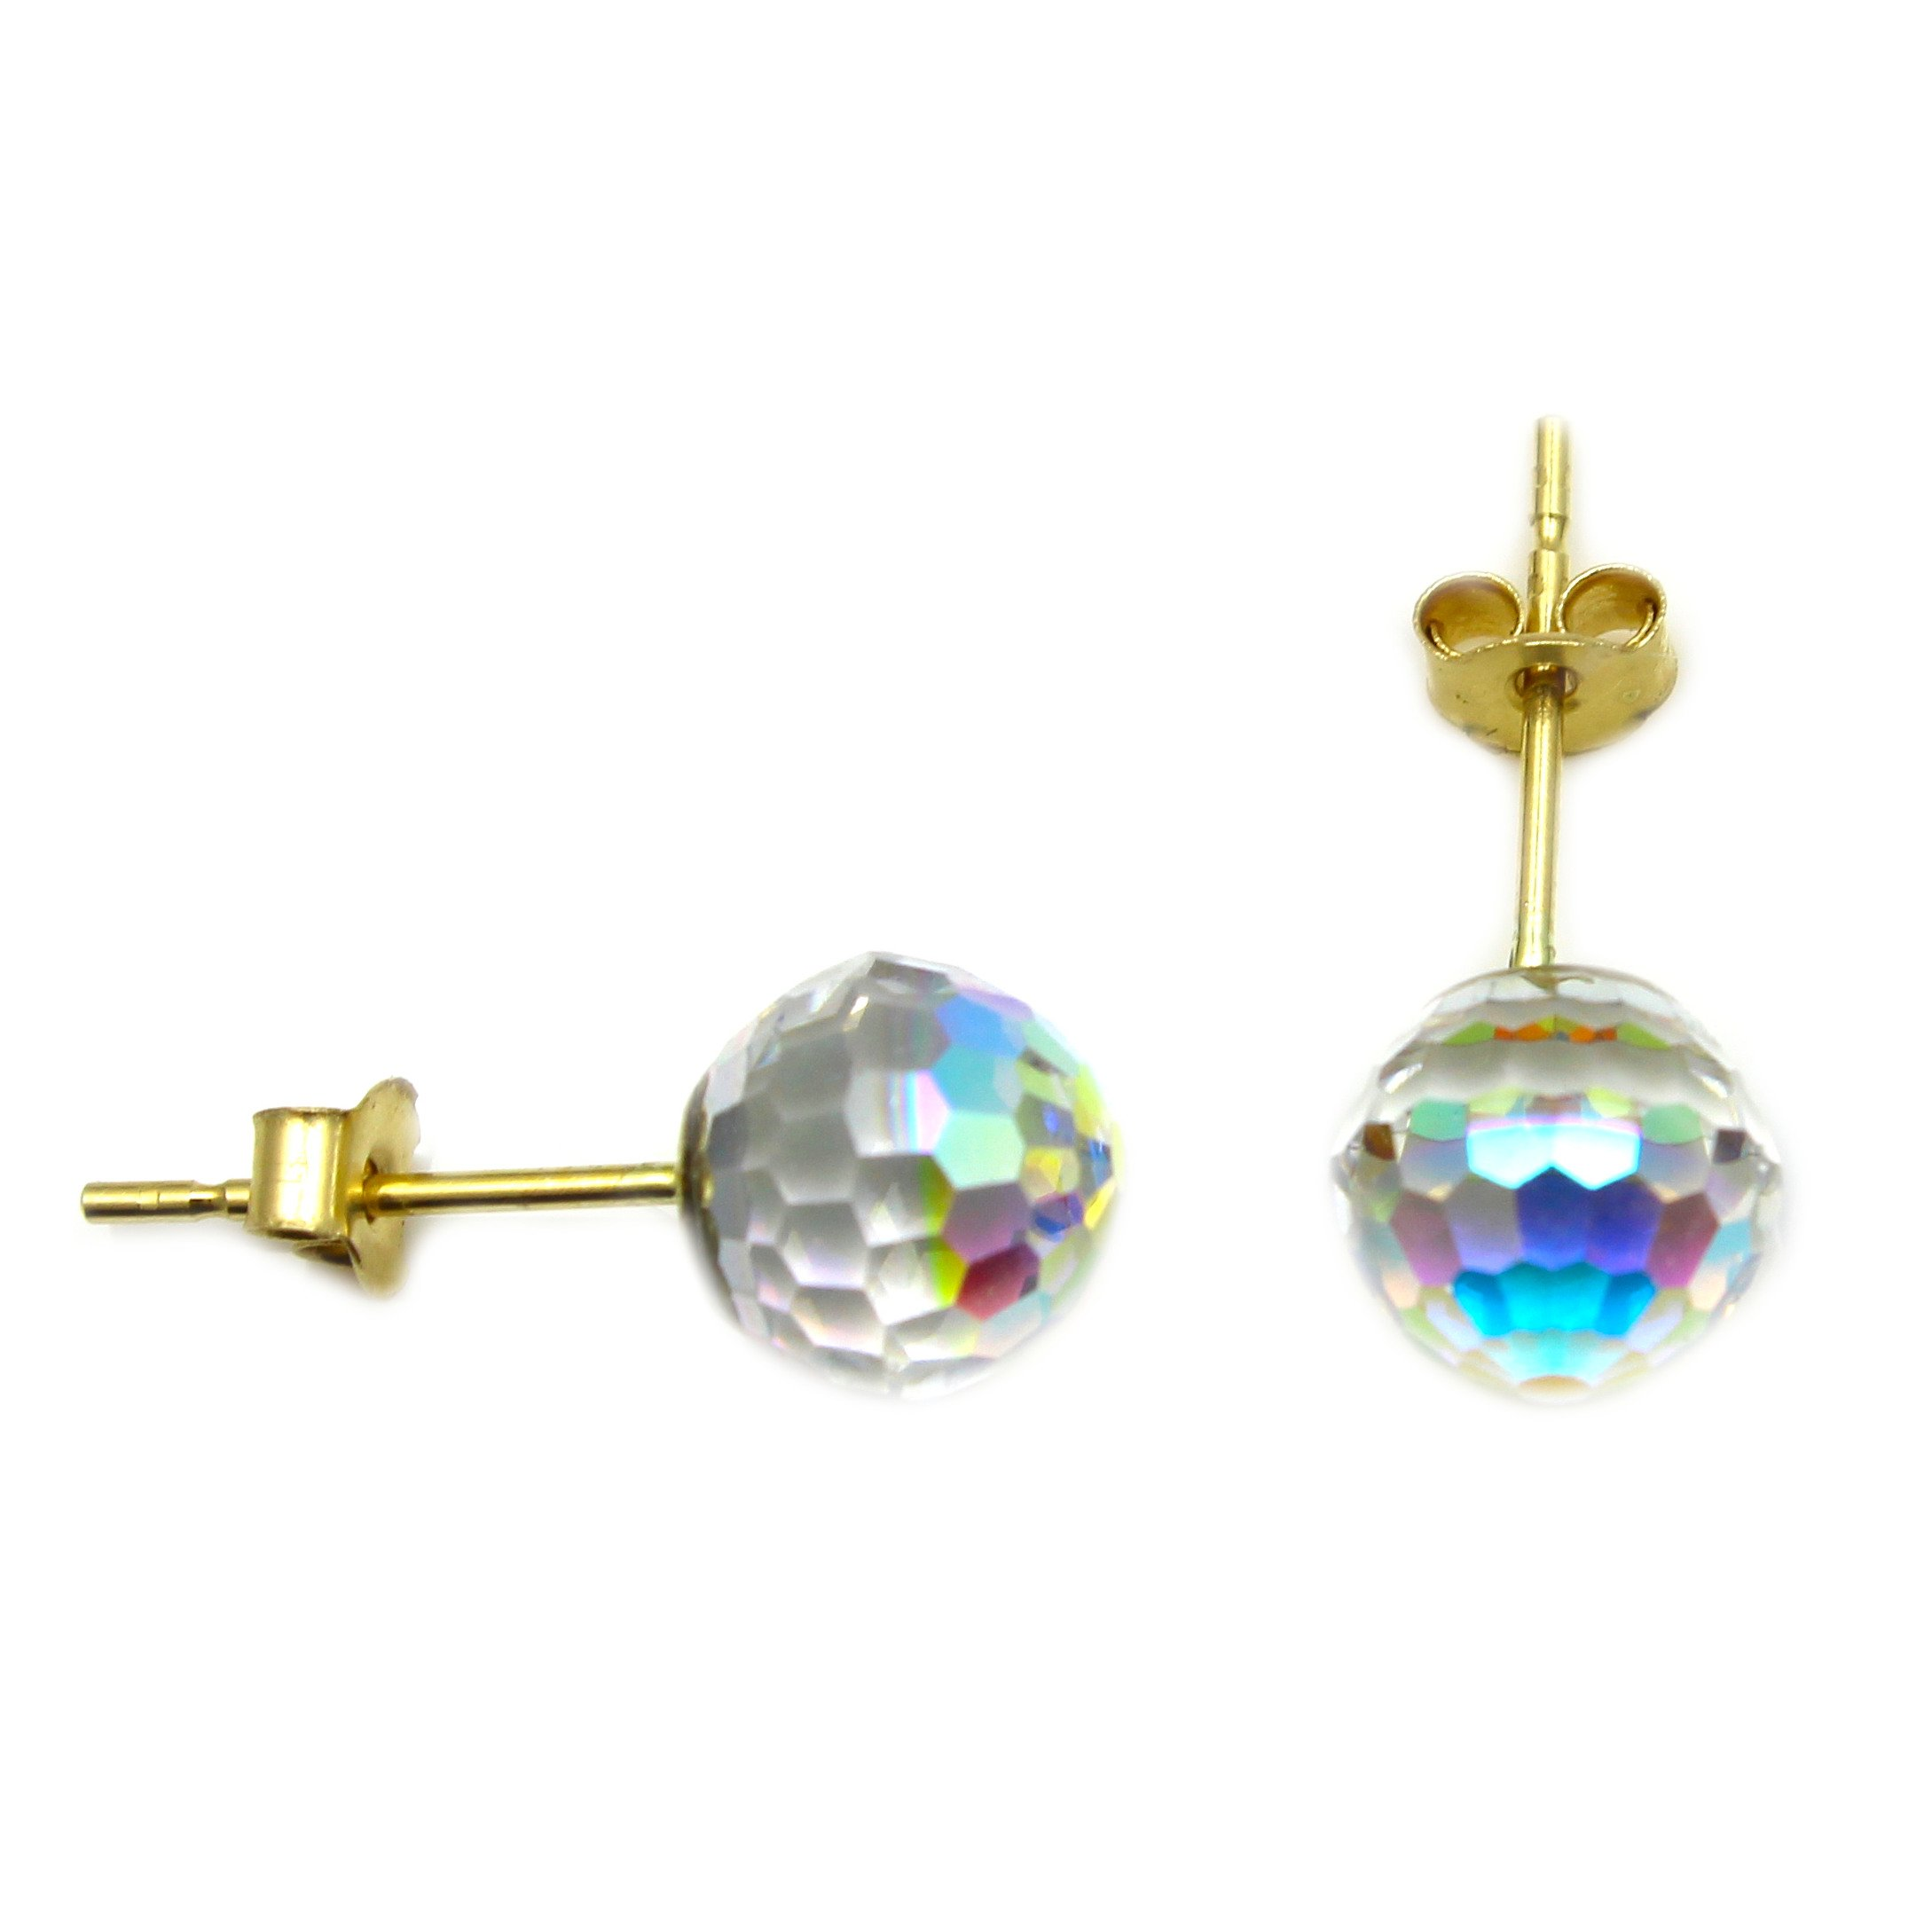 9ct gold crystal ball earrings 6mm